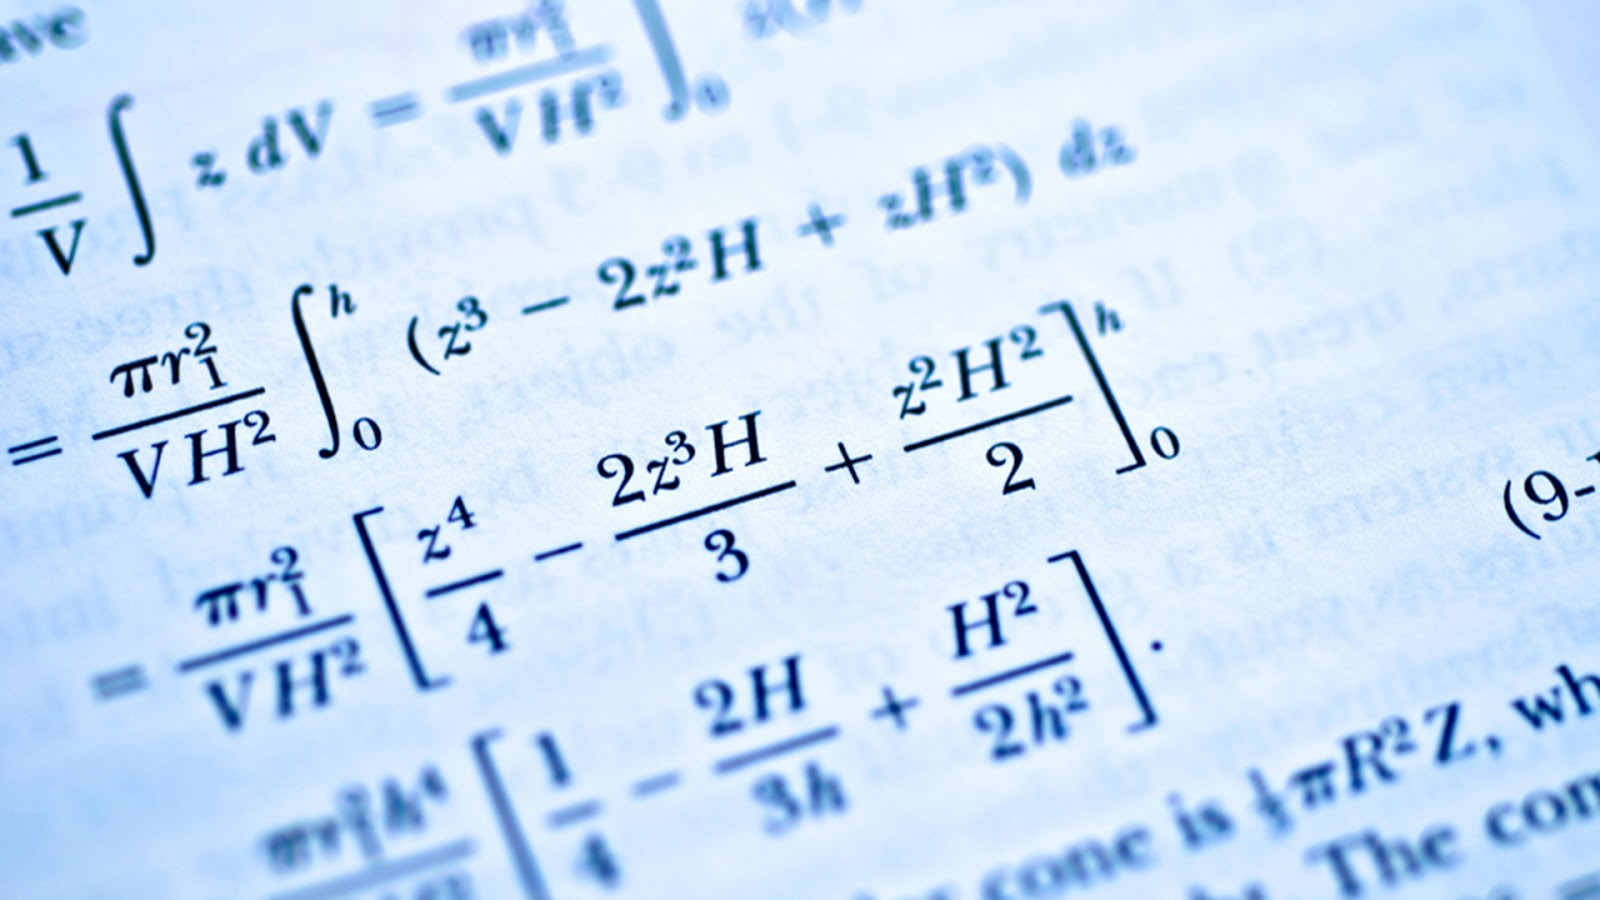 Math Wallpaper Pictures 49712